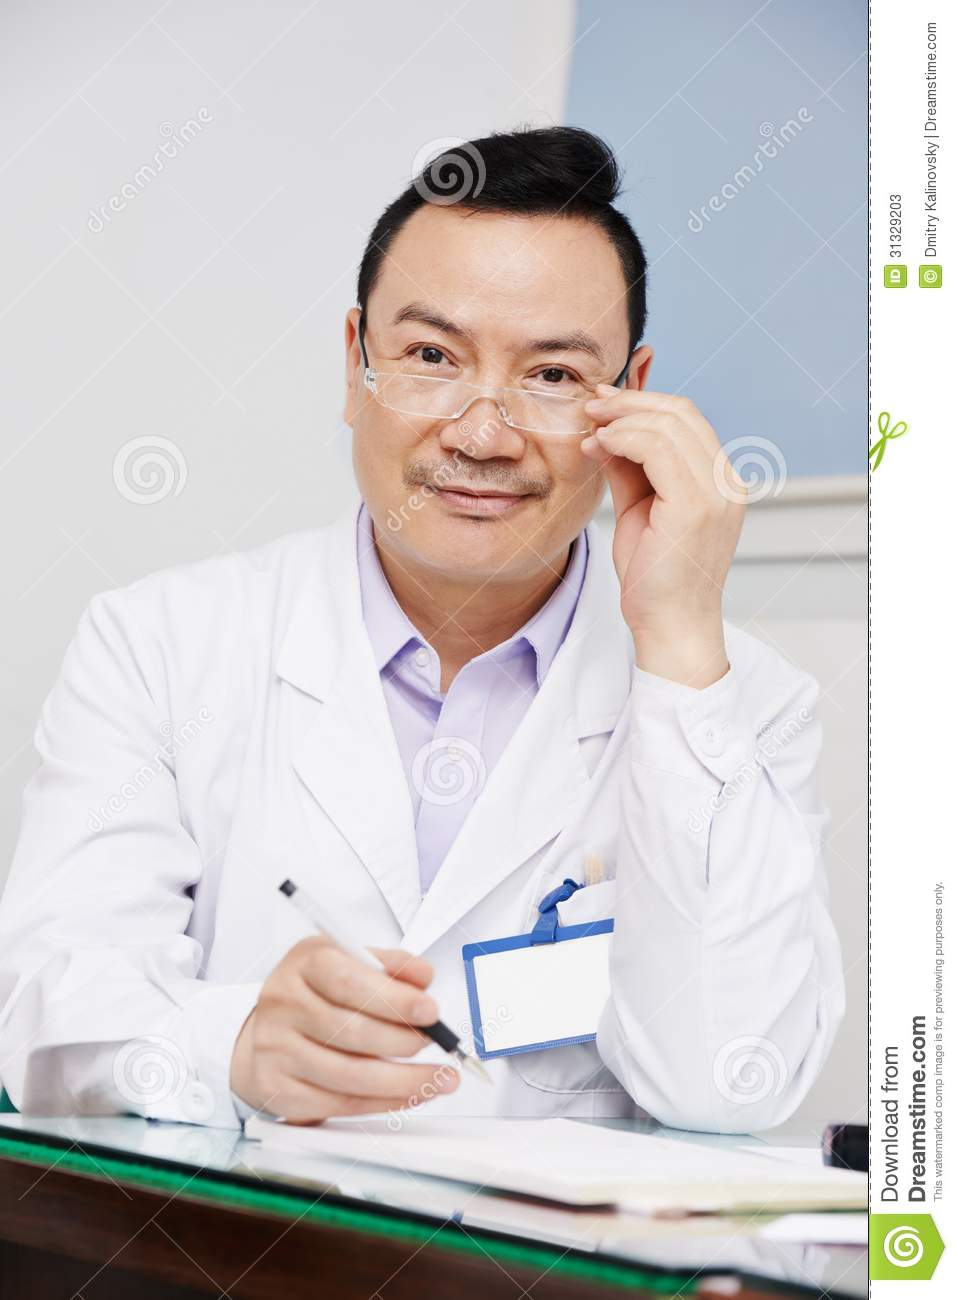 Sorry, Asian male doctor that